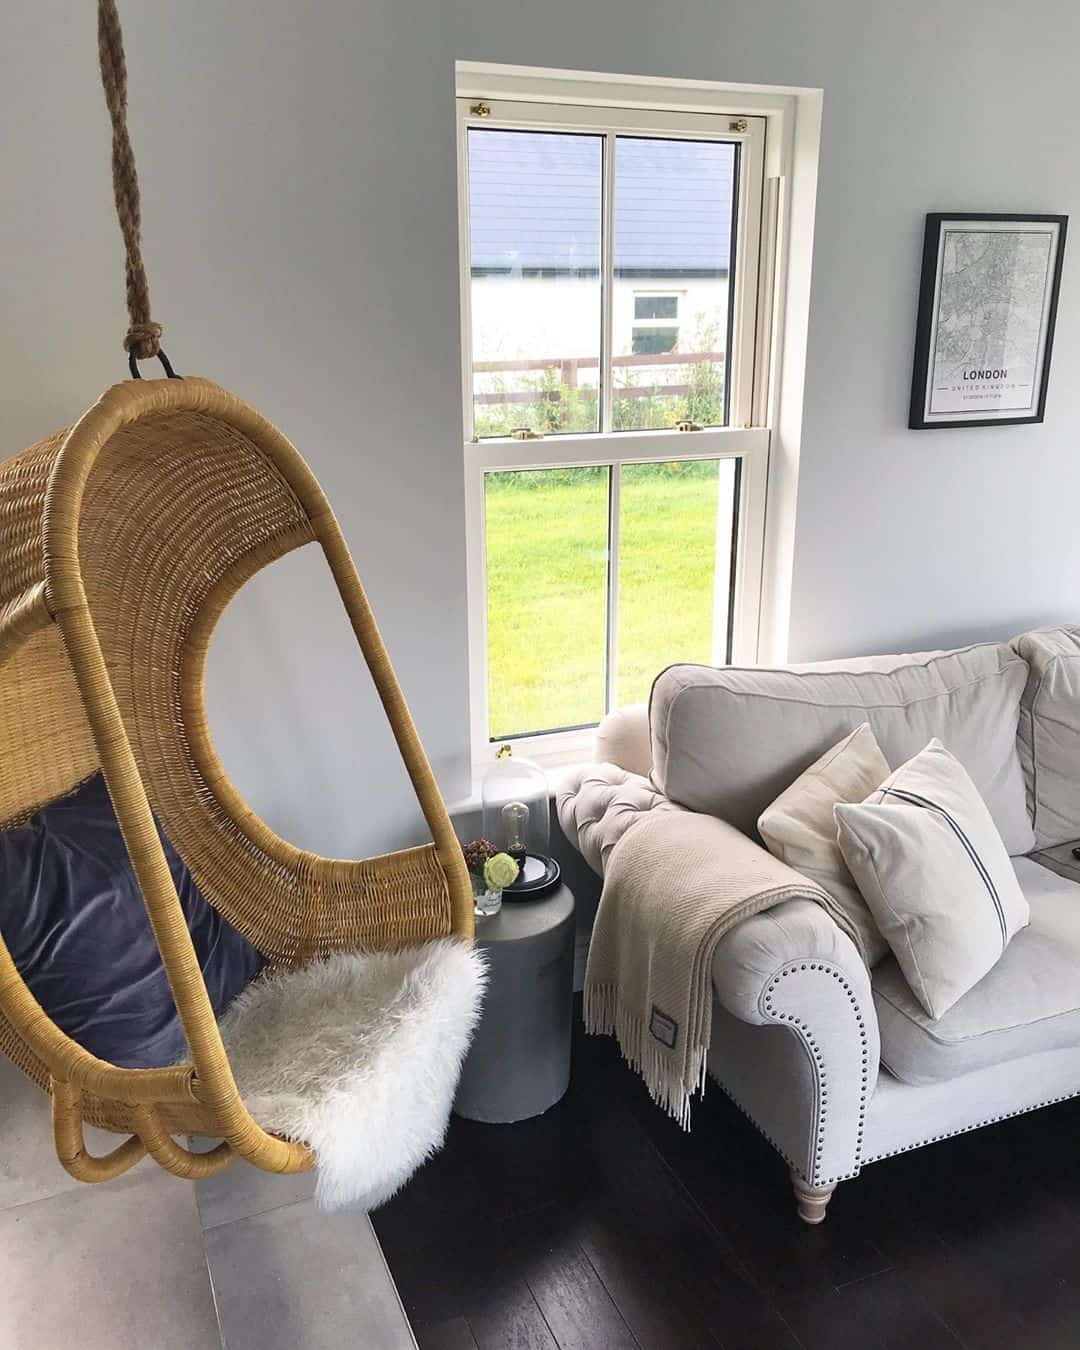 Add Some Fun to Your Home Decor with an Indoor Swing